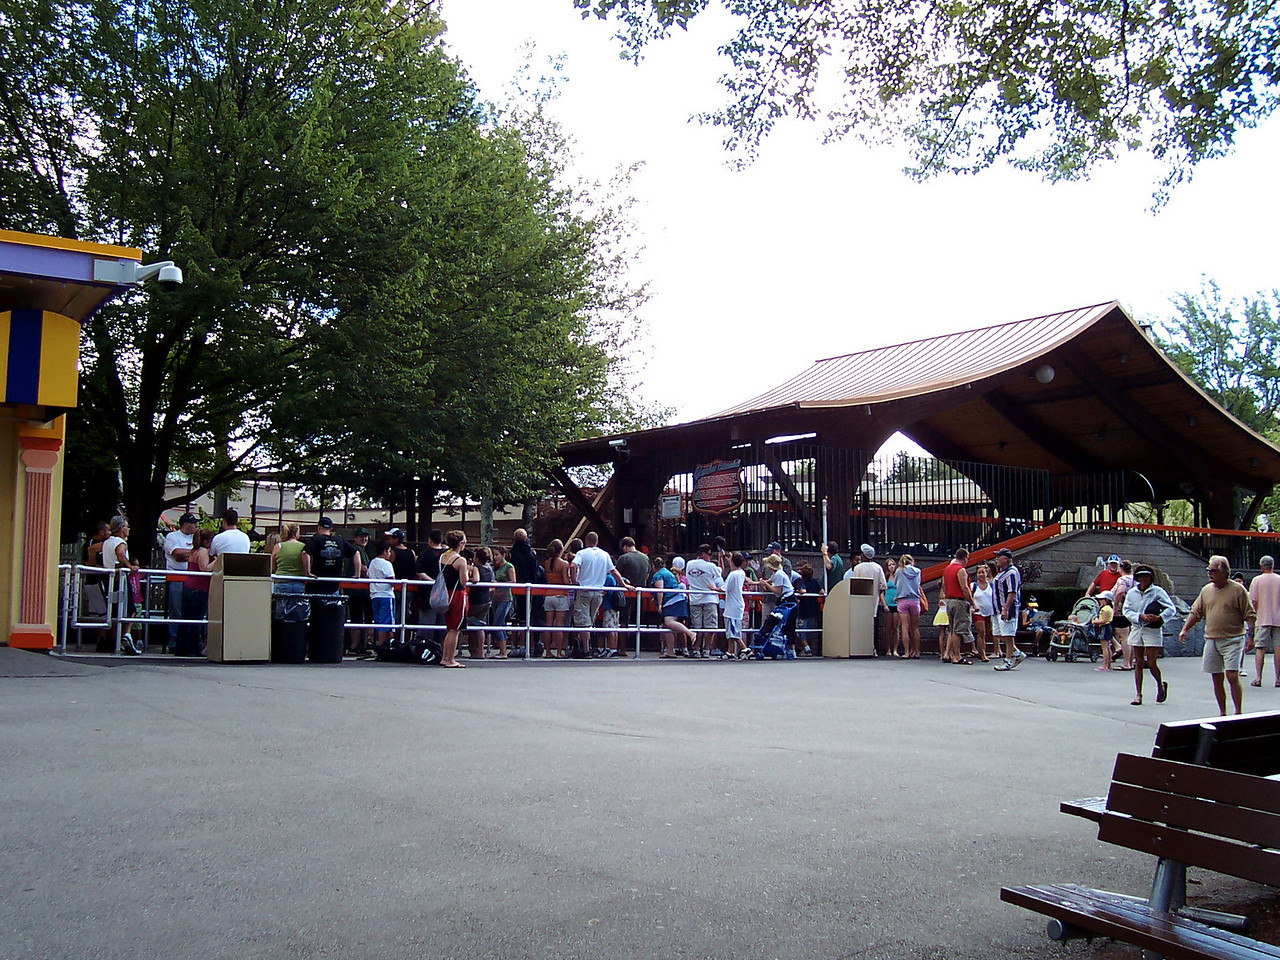 This was the Yankee Cannonball queue at 10:40am, before rides opened at 11:00am.